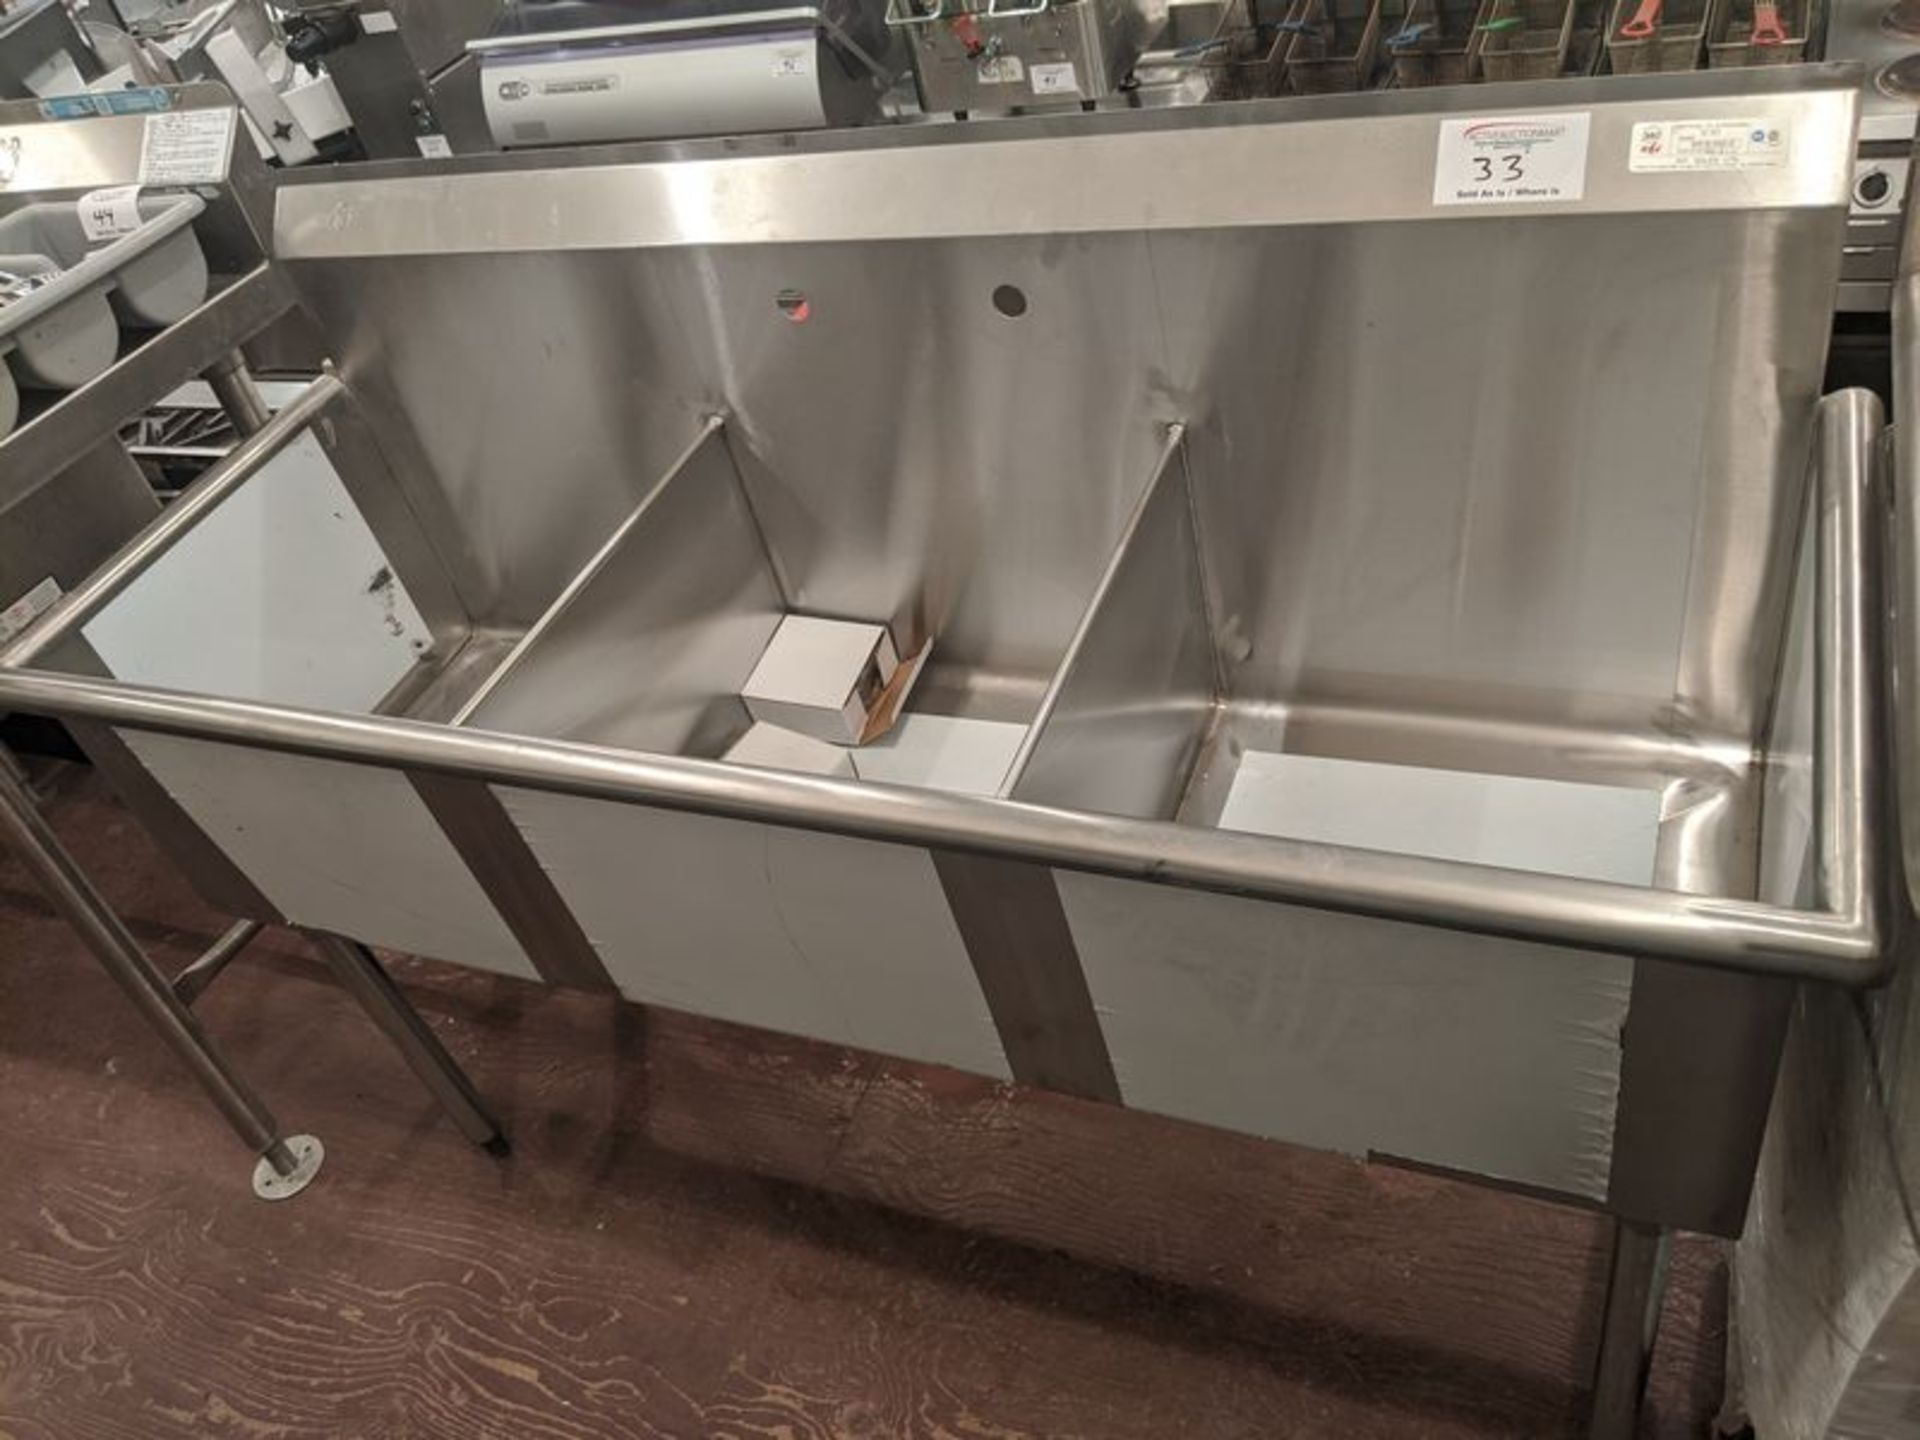 Lot 33 - NEW EFI 3 Compartment Stainless Steel Sink - 56 inches